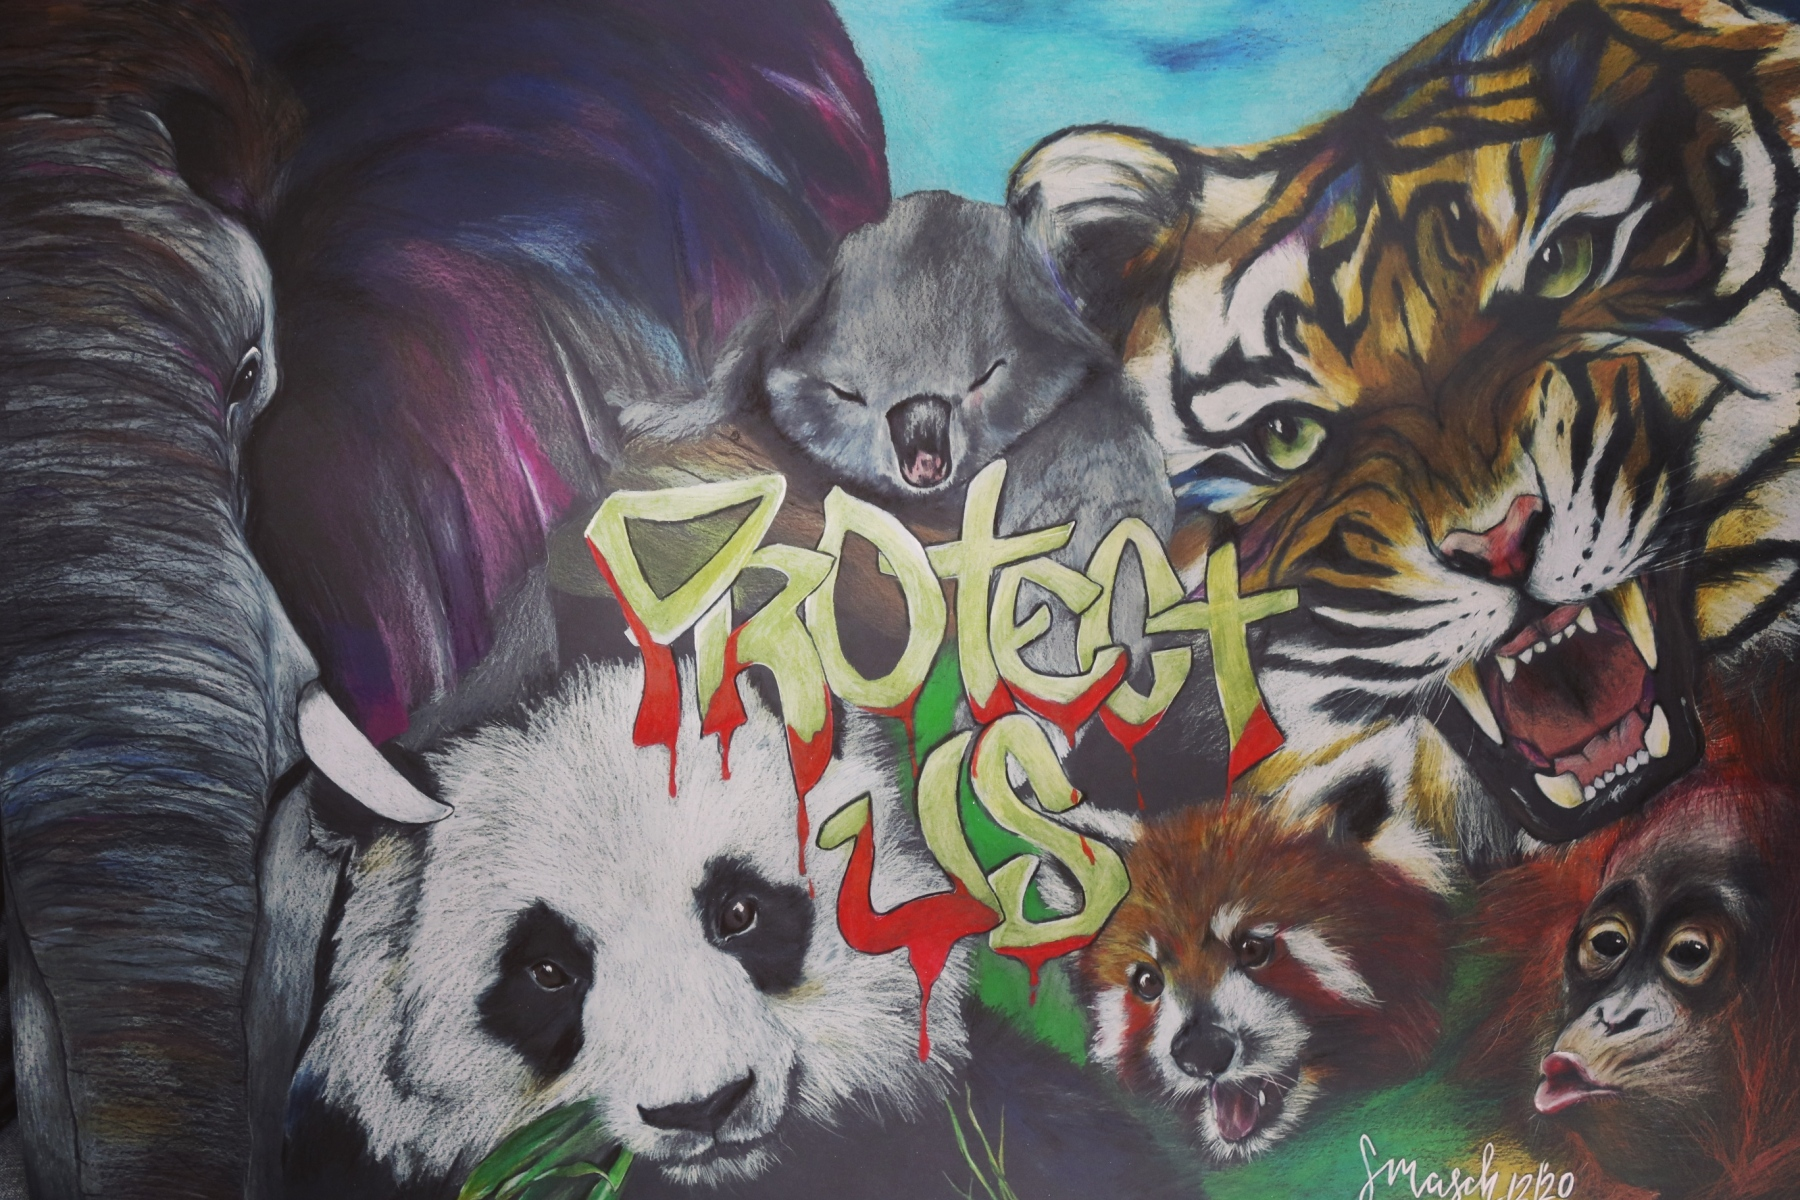 Polychromos-70x100-Right-to-live-